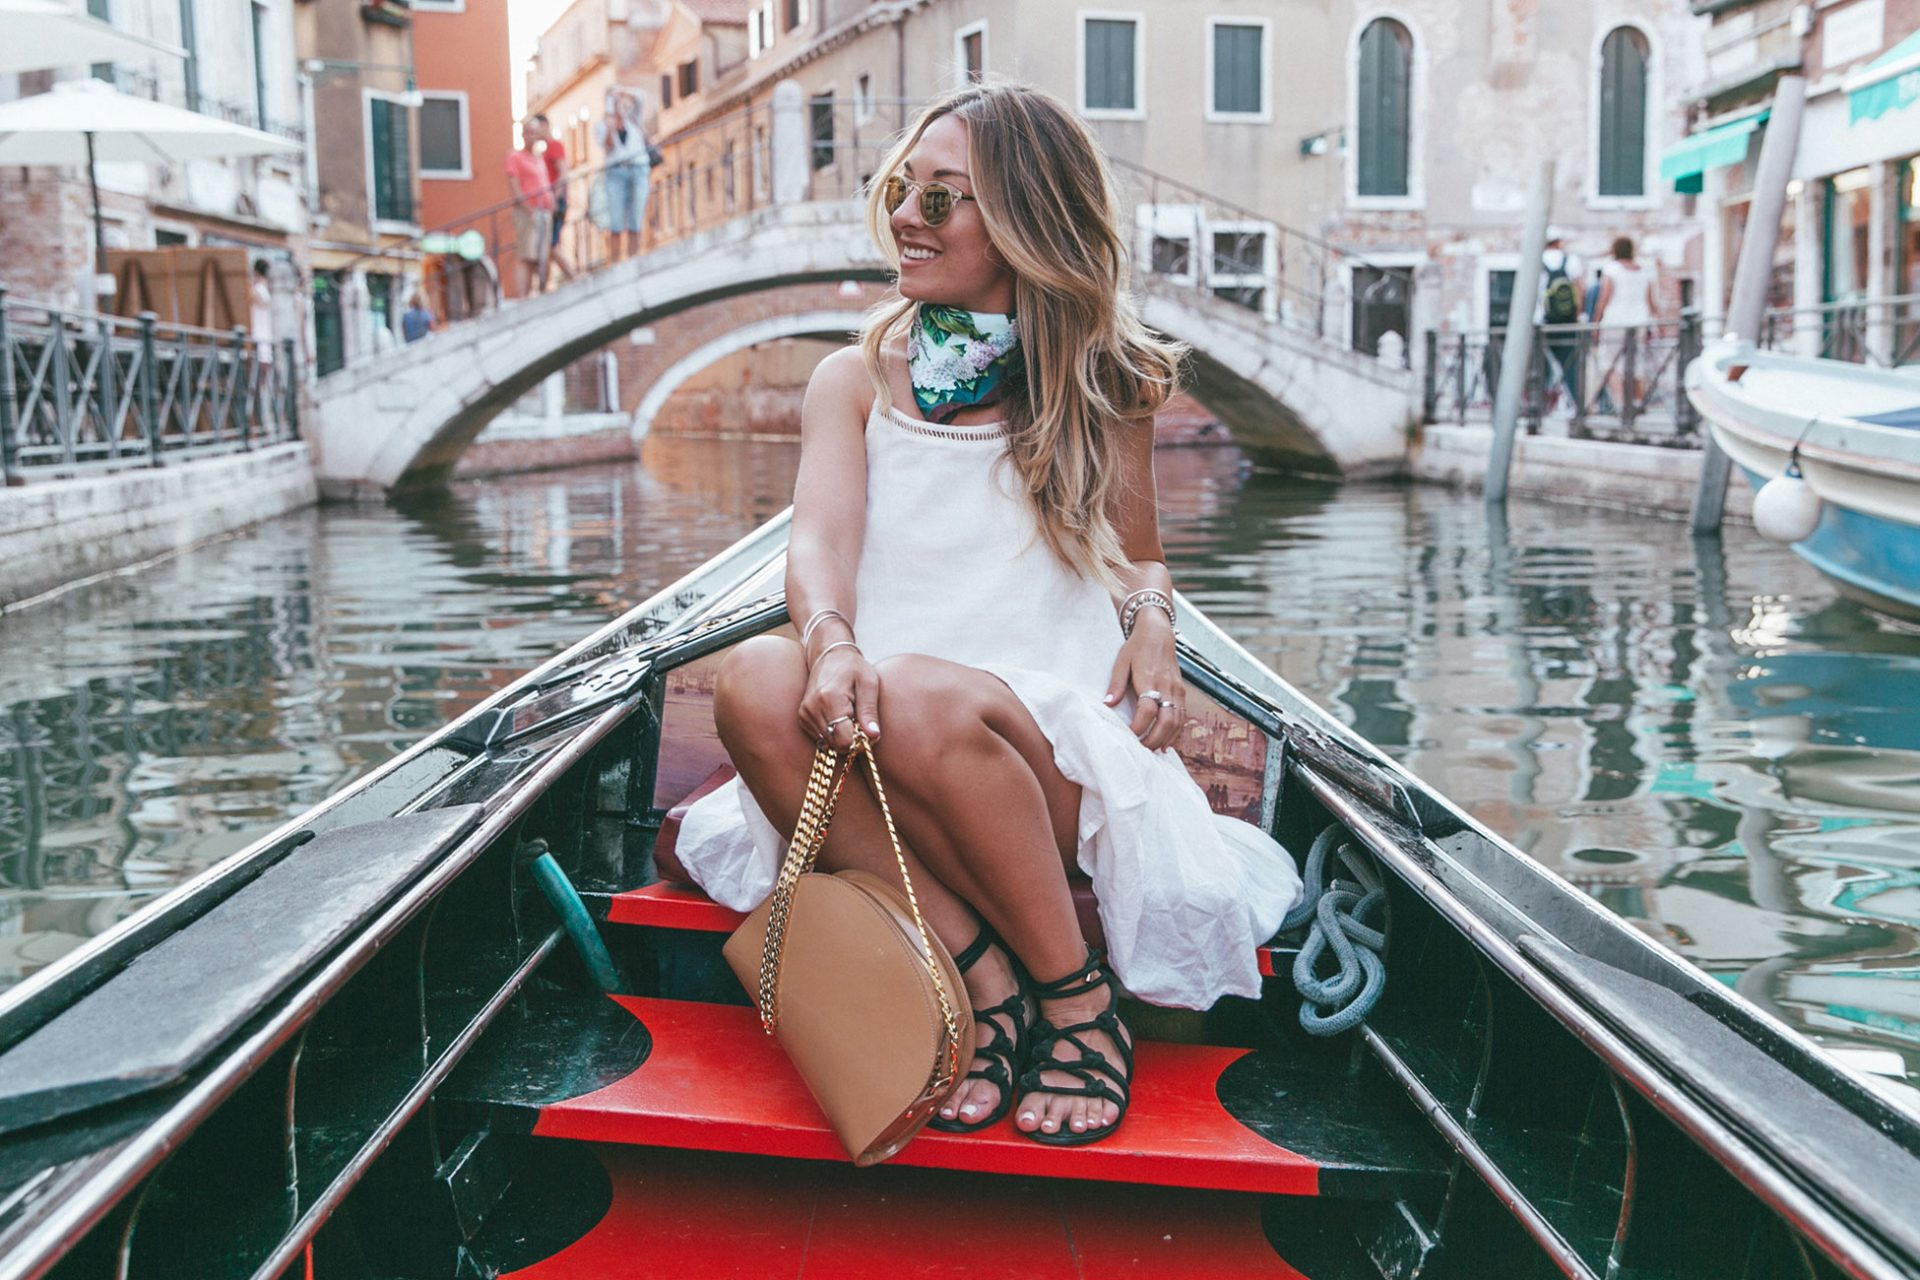 Travel blogger Laura McWhinnie from This Island Life cruising through the canals of Venice, Italy in a gondola at sunset.